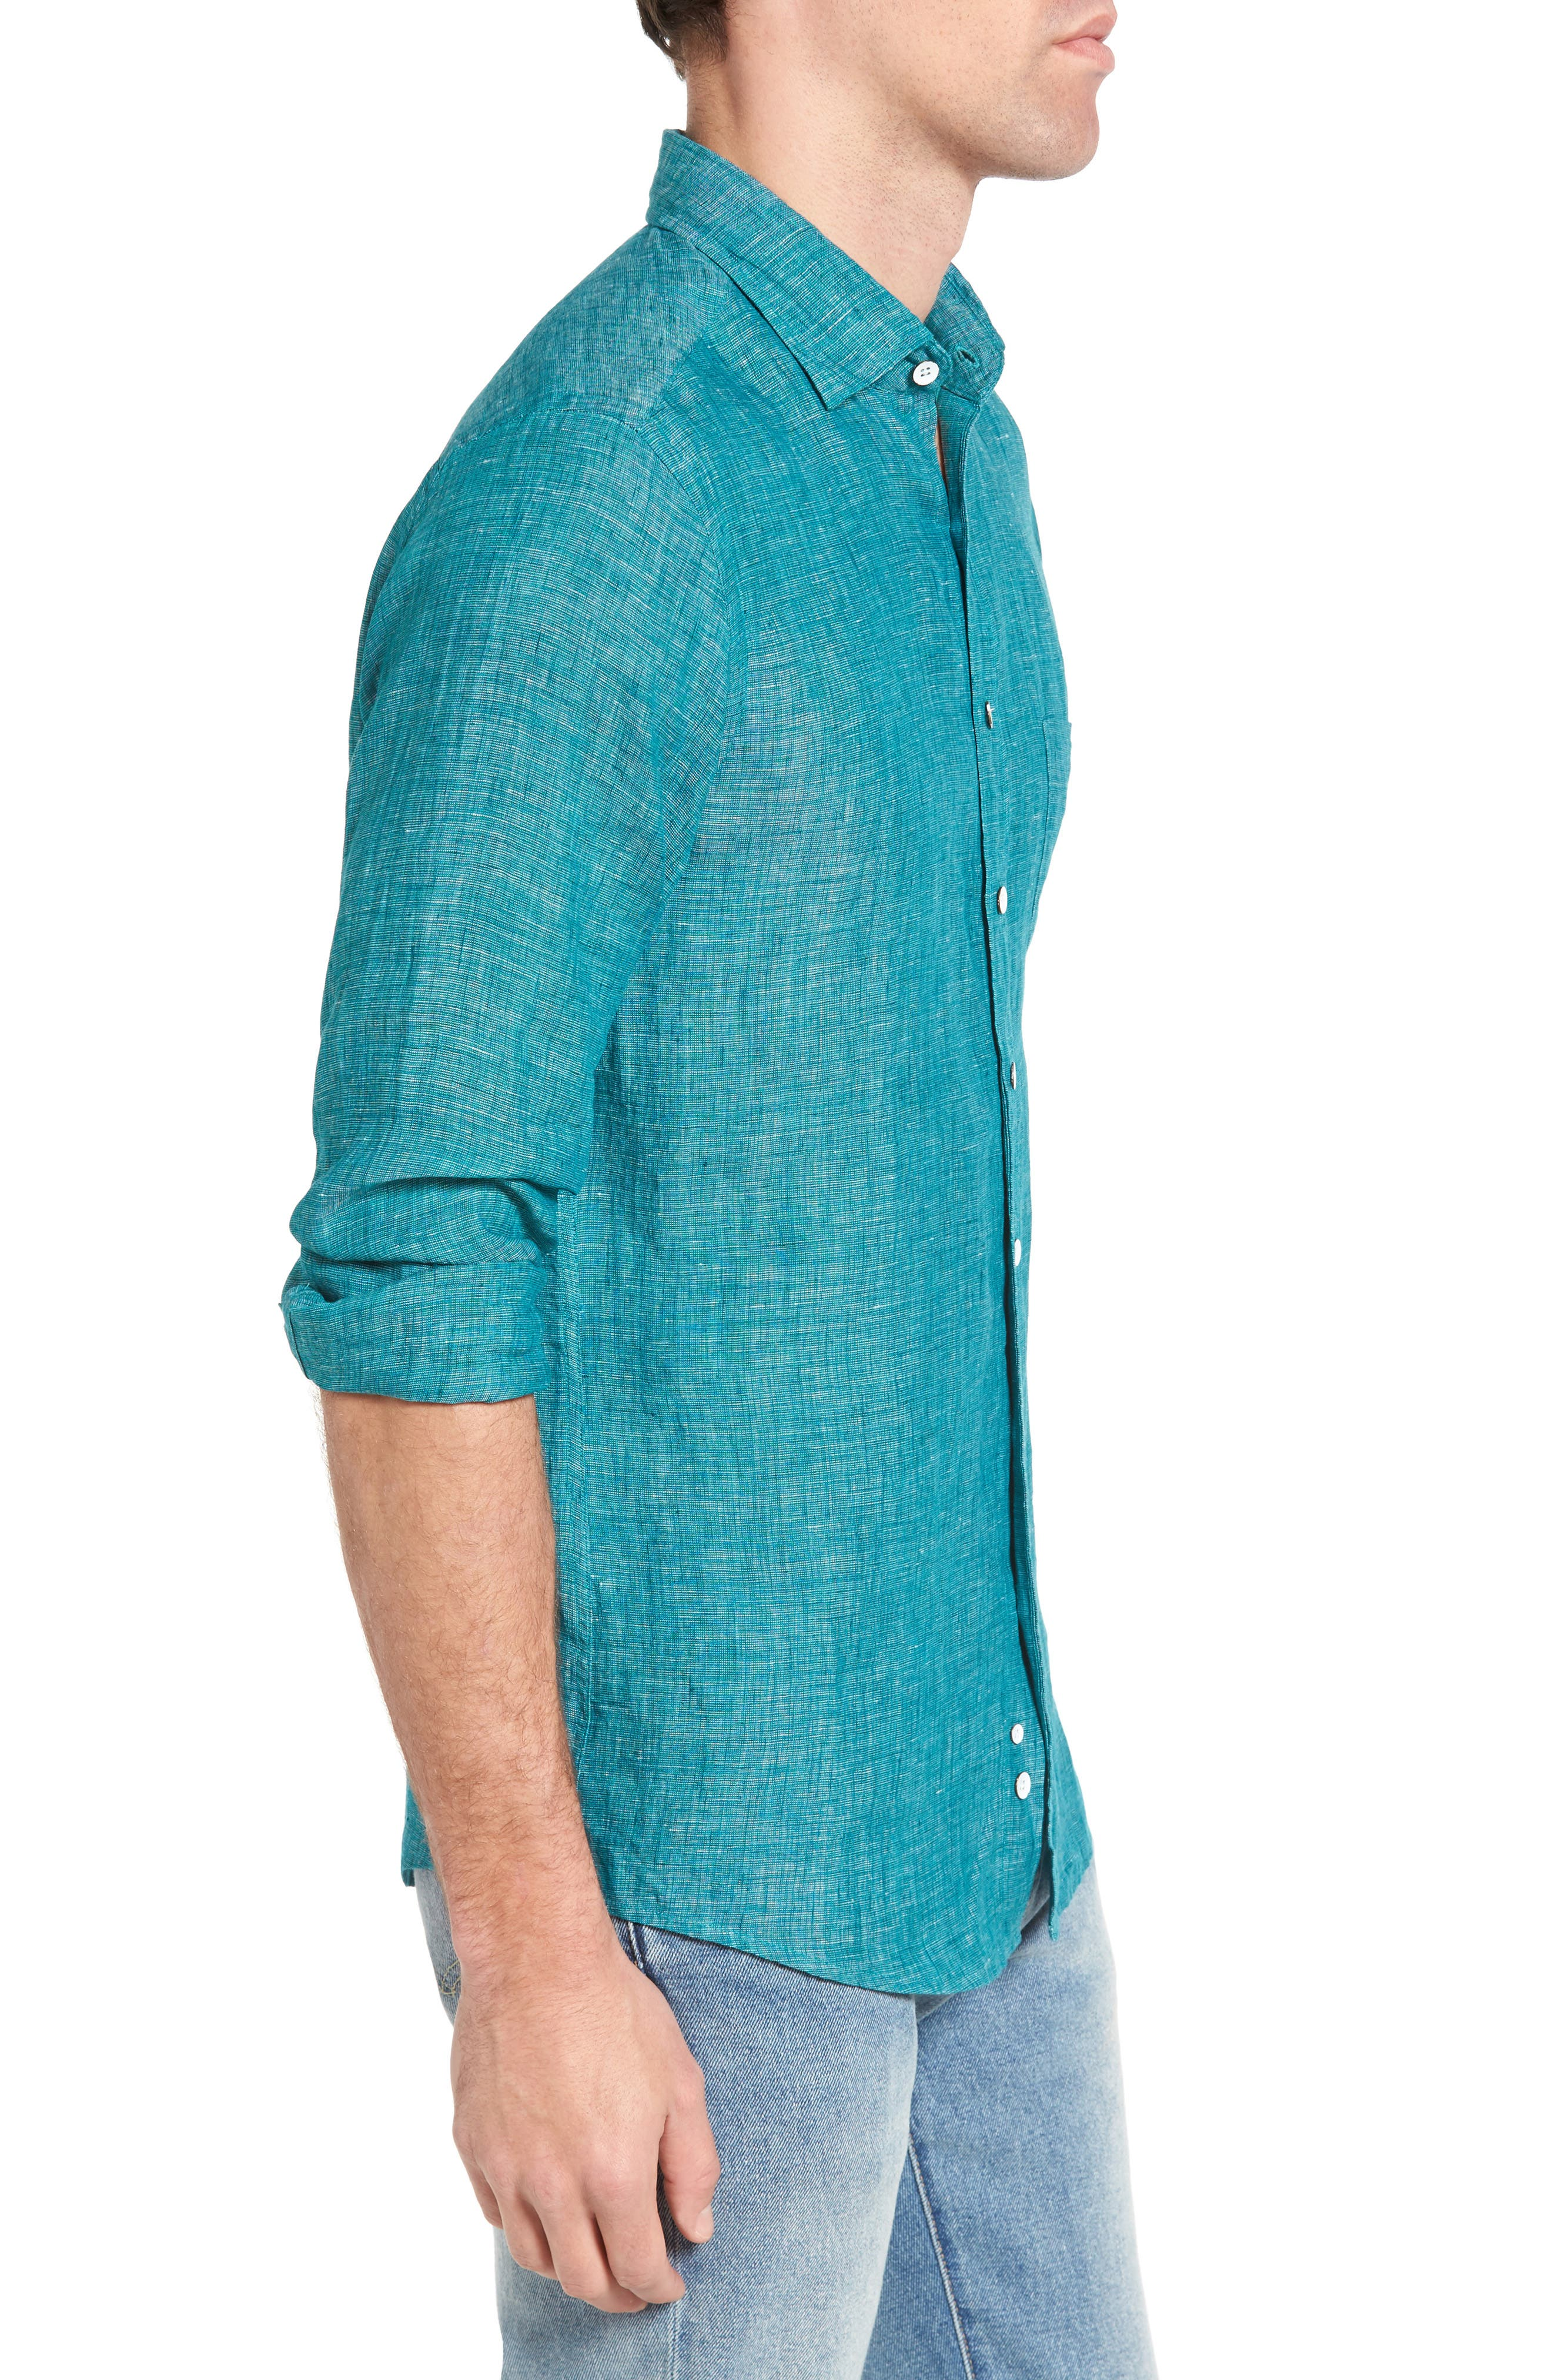 Norsewood Sports Fit Linen Sport Shirt,                             Alternate thumbnail 3, color,                             342